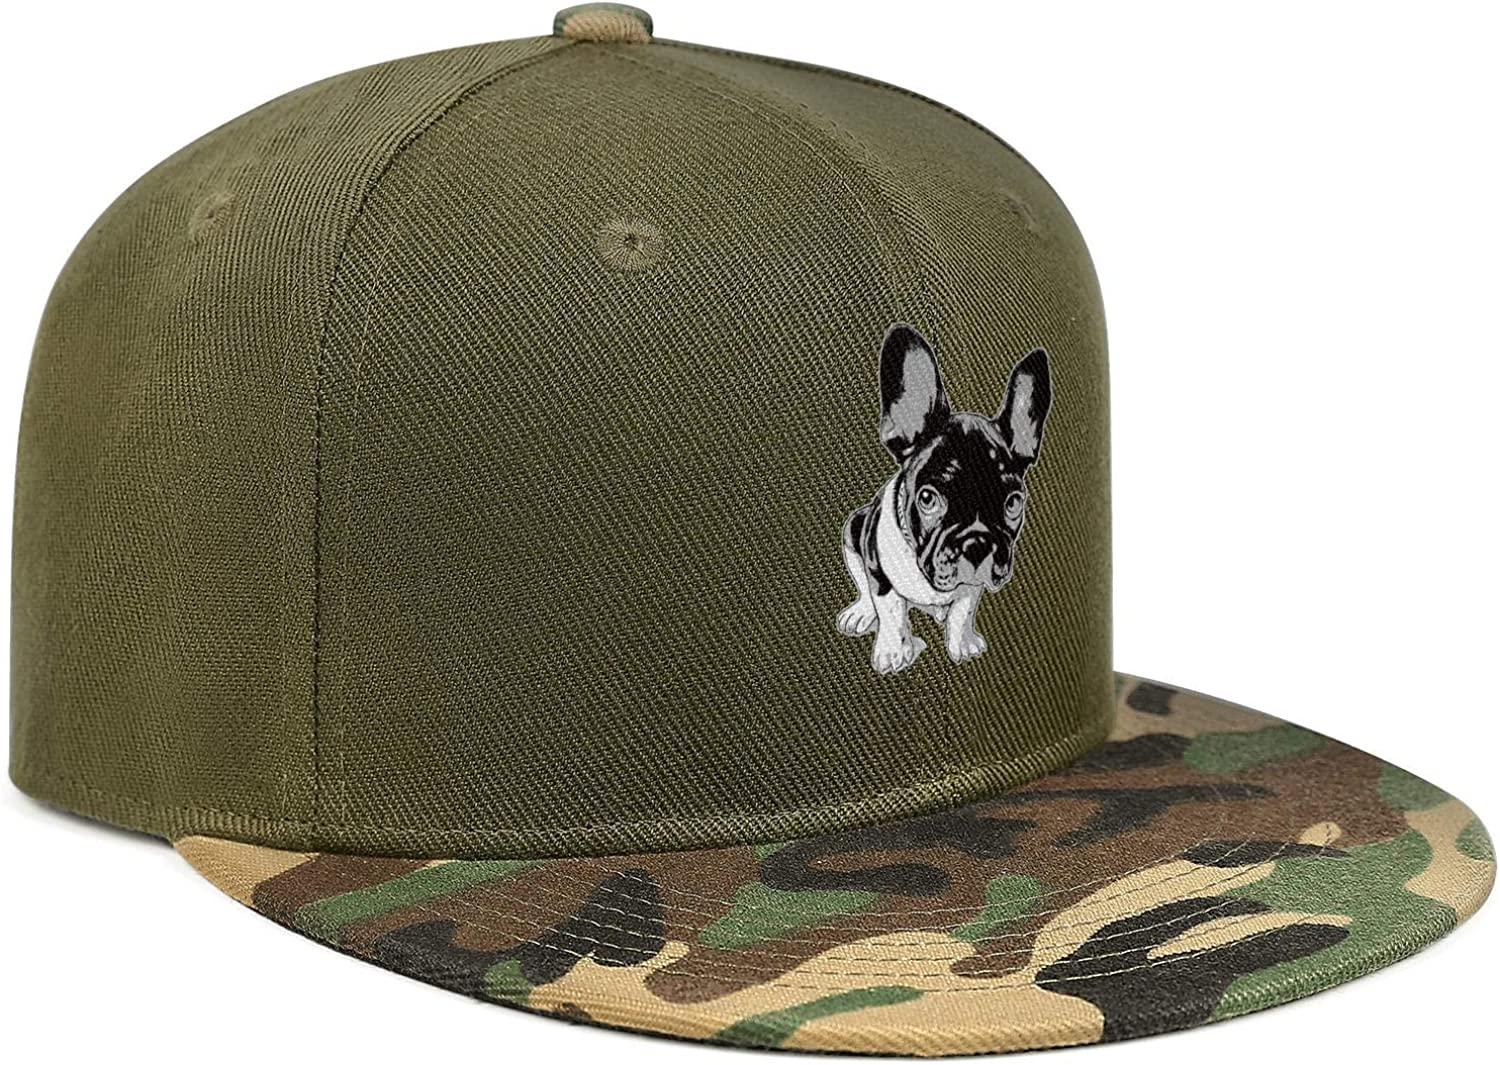 Cool French Bulldog Cute Animals Unisex Baseball Cap Cooling Fishing Hats Adjustable Trucker Caps Dad-Hat